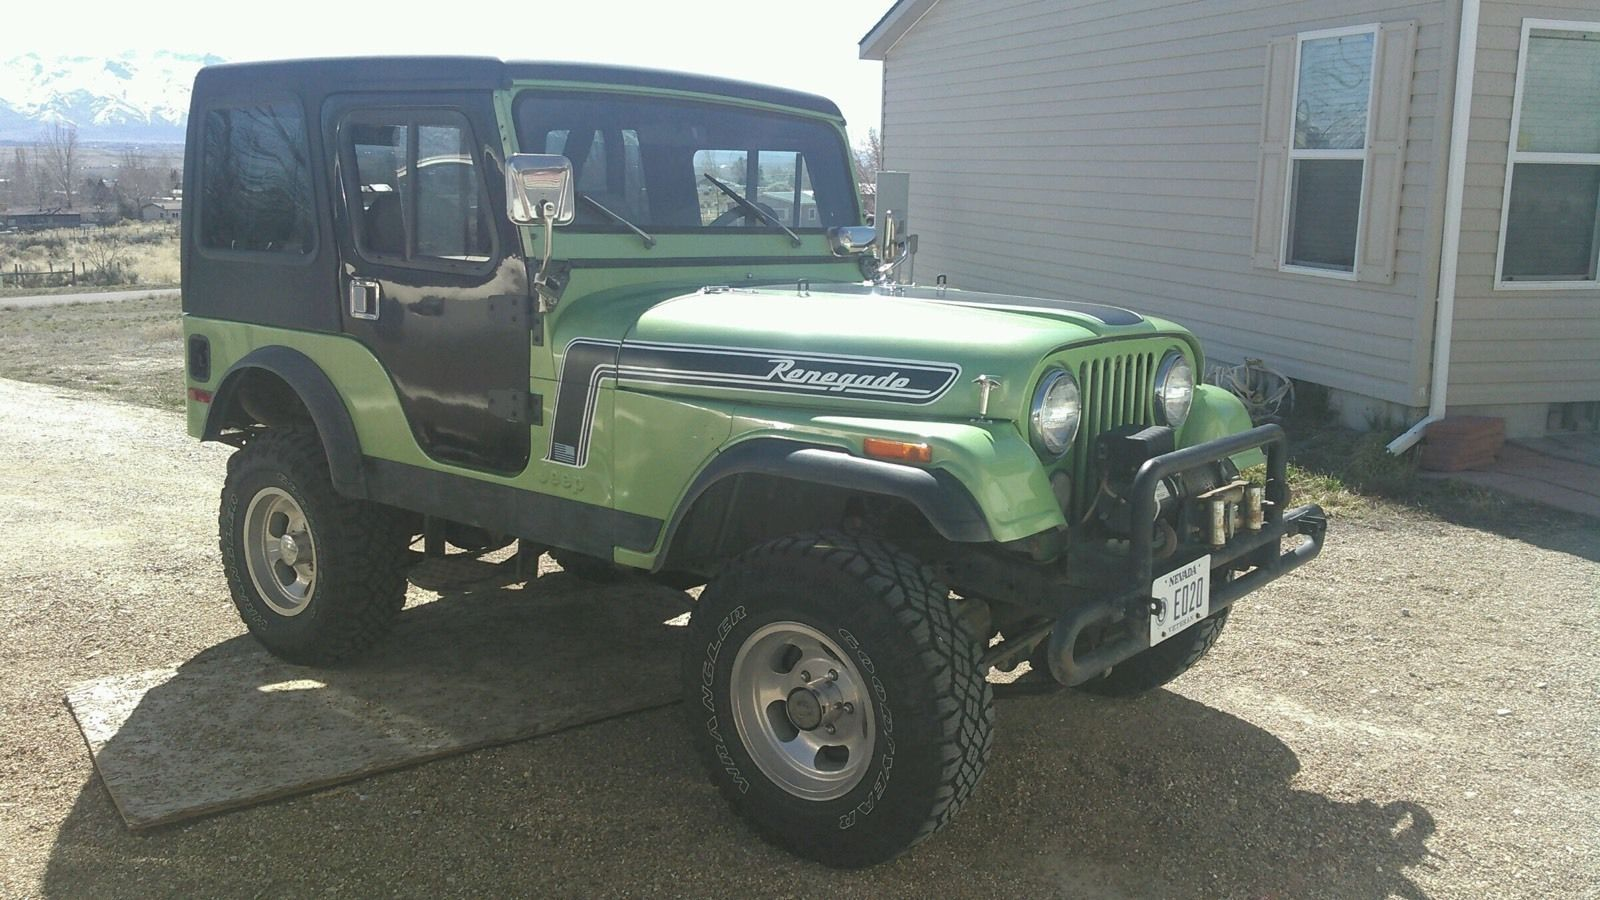 Jeep Cj5 Hard Top And Two Doors With Glass Windows